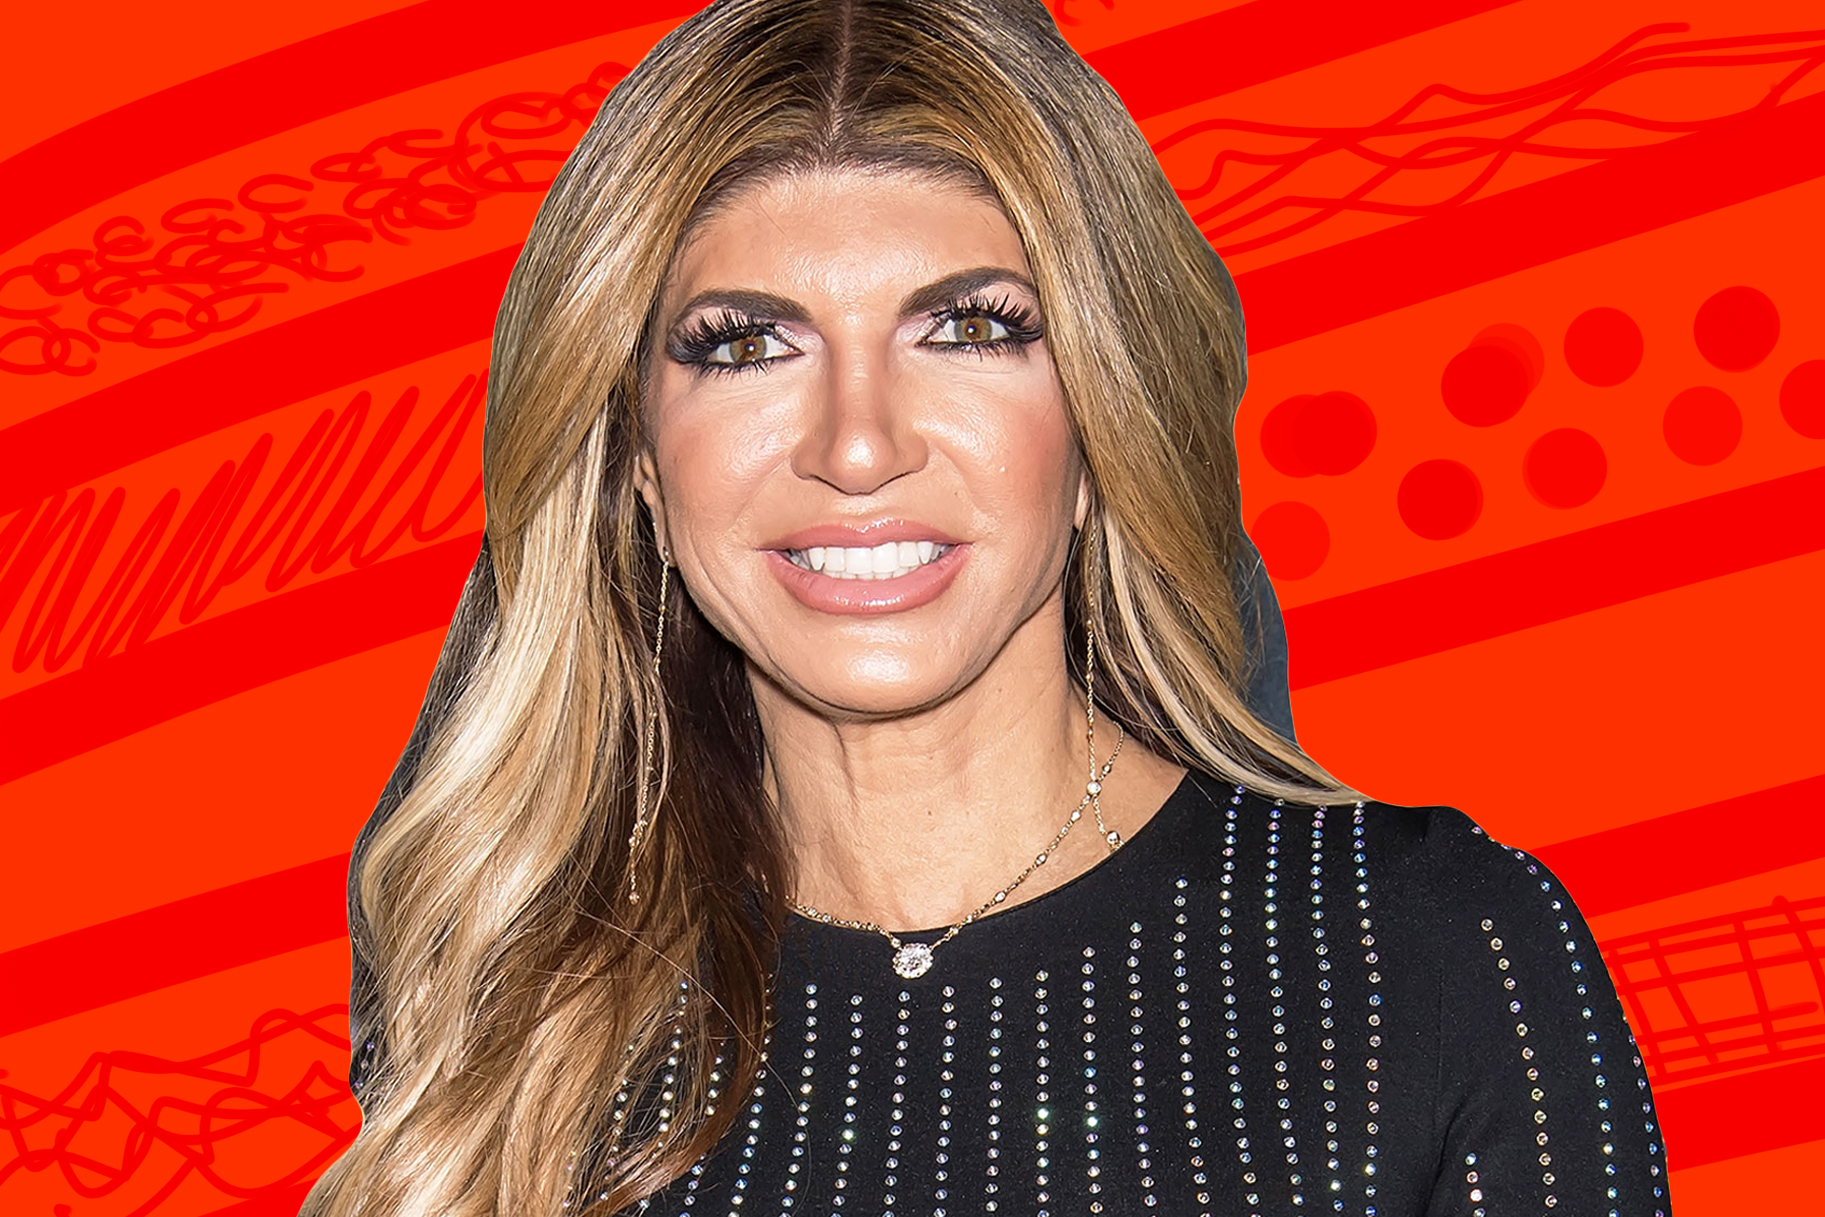 The Feast Teresa Giudice Promote